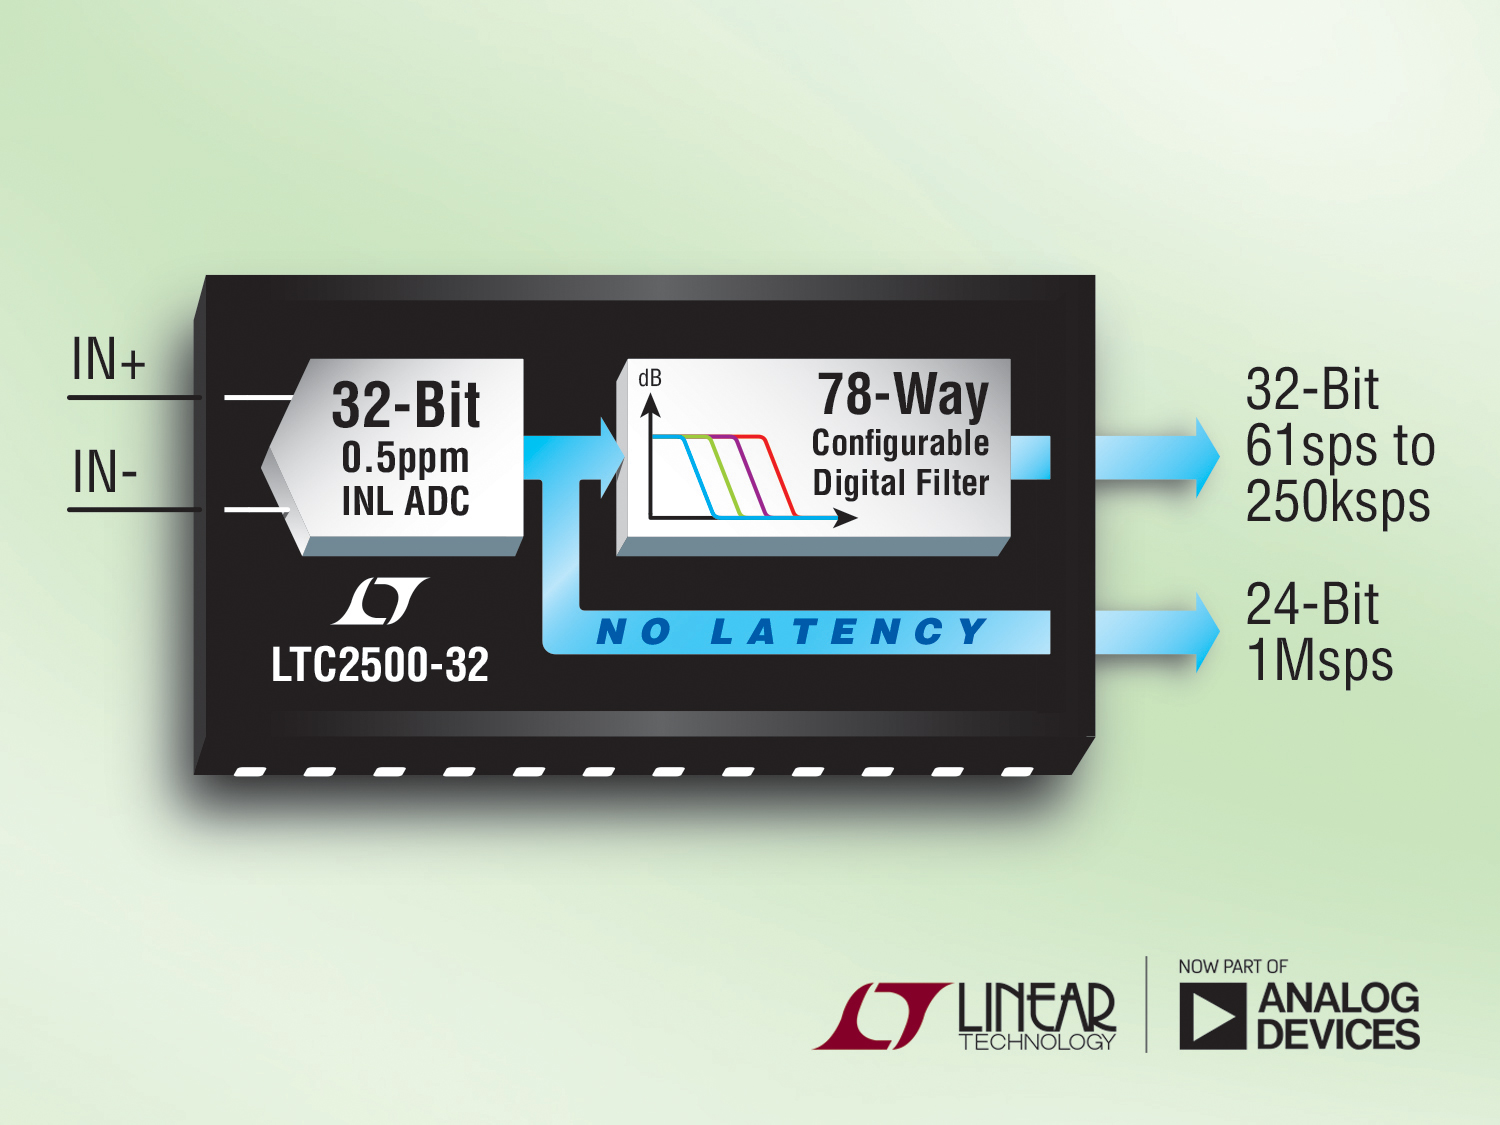 32-Bit SAR ADC with 0.5ppm Linearity Provides 148dB Dynamic Range